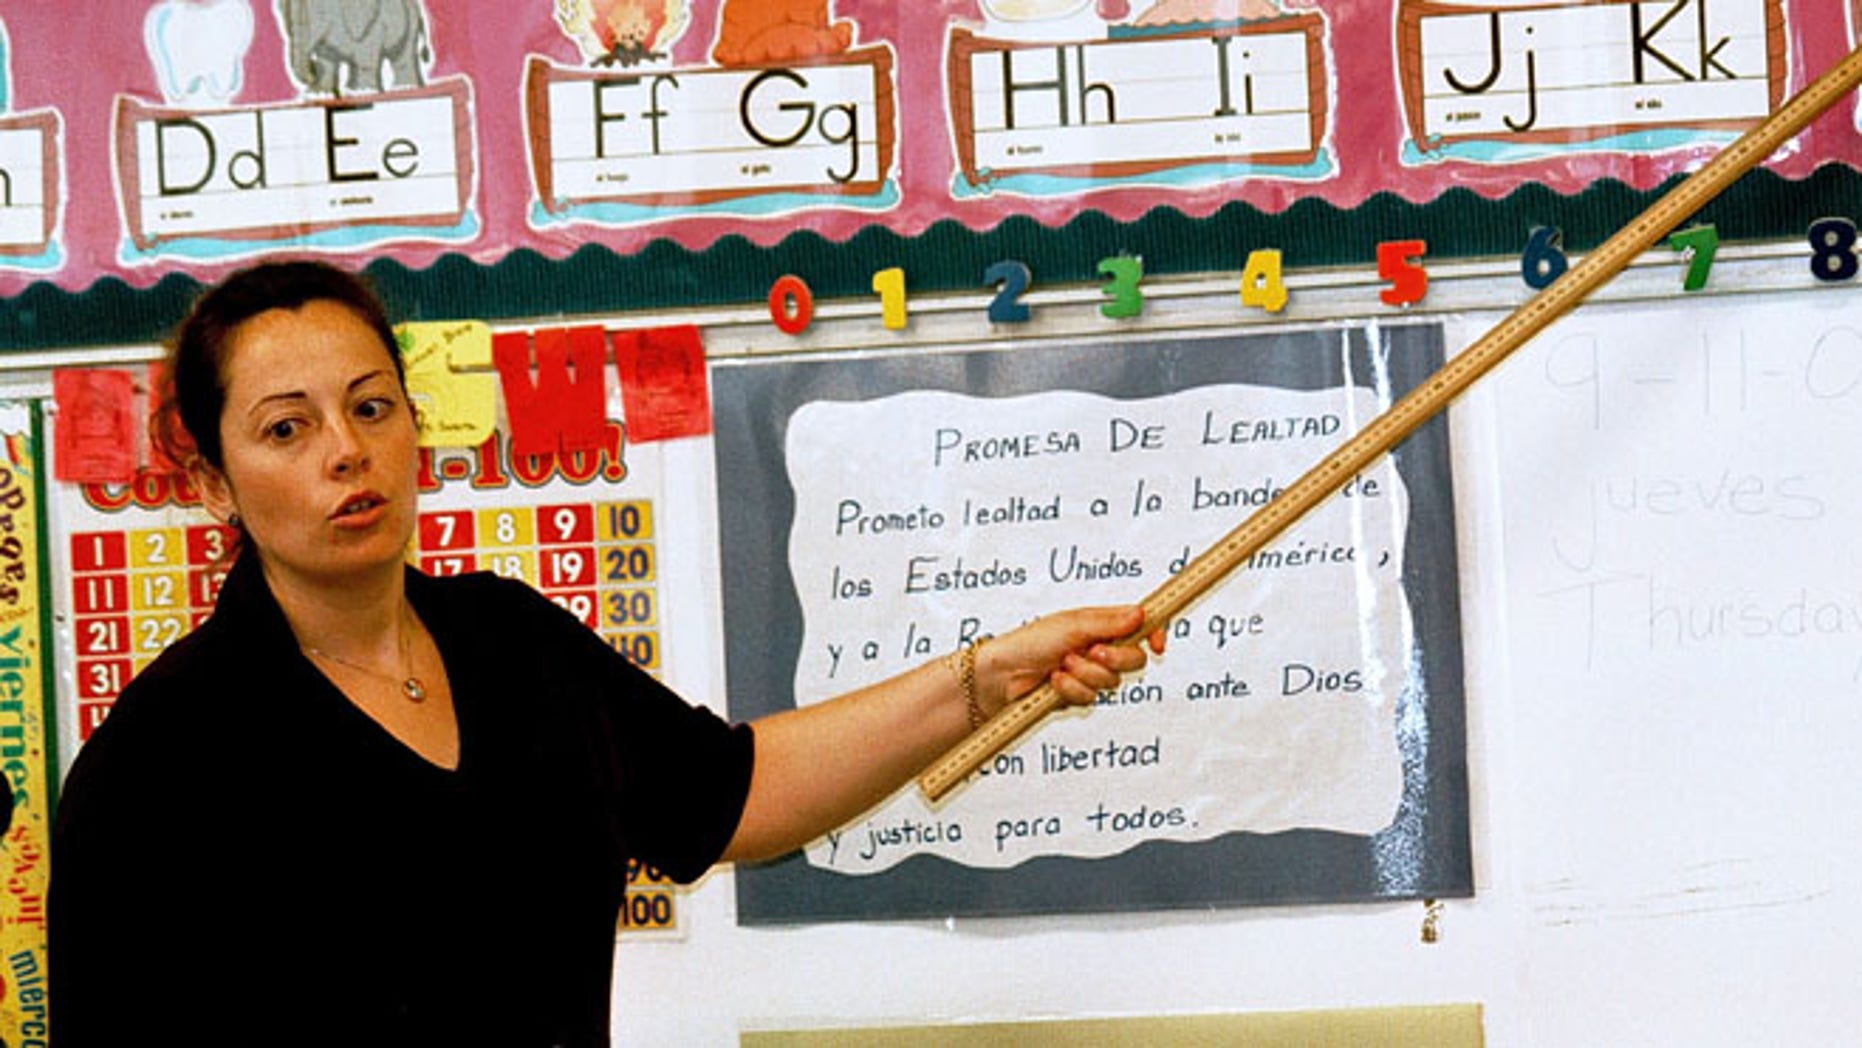 TYLER,TX - SEPTEMBER 11:  Lourdes Carmona, a Spanish speaking first grade teacher, instructs a class on the Spanish pronunciations of the alphabet at Birdwell Elementary School September 11, 2003 in Tyler, Texas. Carmona, a native of Spain, was recruited 5 years ago to teach Spanish speaking youngsters reading, writing, and arithmetic in their native language, as there was and continues to be a shortage of bilingual teachers in Texas. Carmona and her husband, also a native of Spain, are both employed by the Tyler Independent School District and permanently live in the east Texas city.  (Photo by Mario Villafuerte/Getty Images)